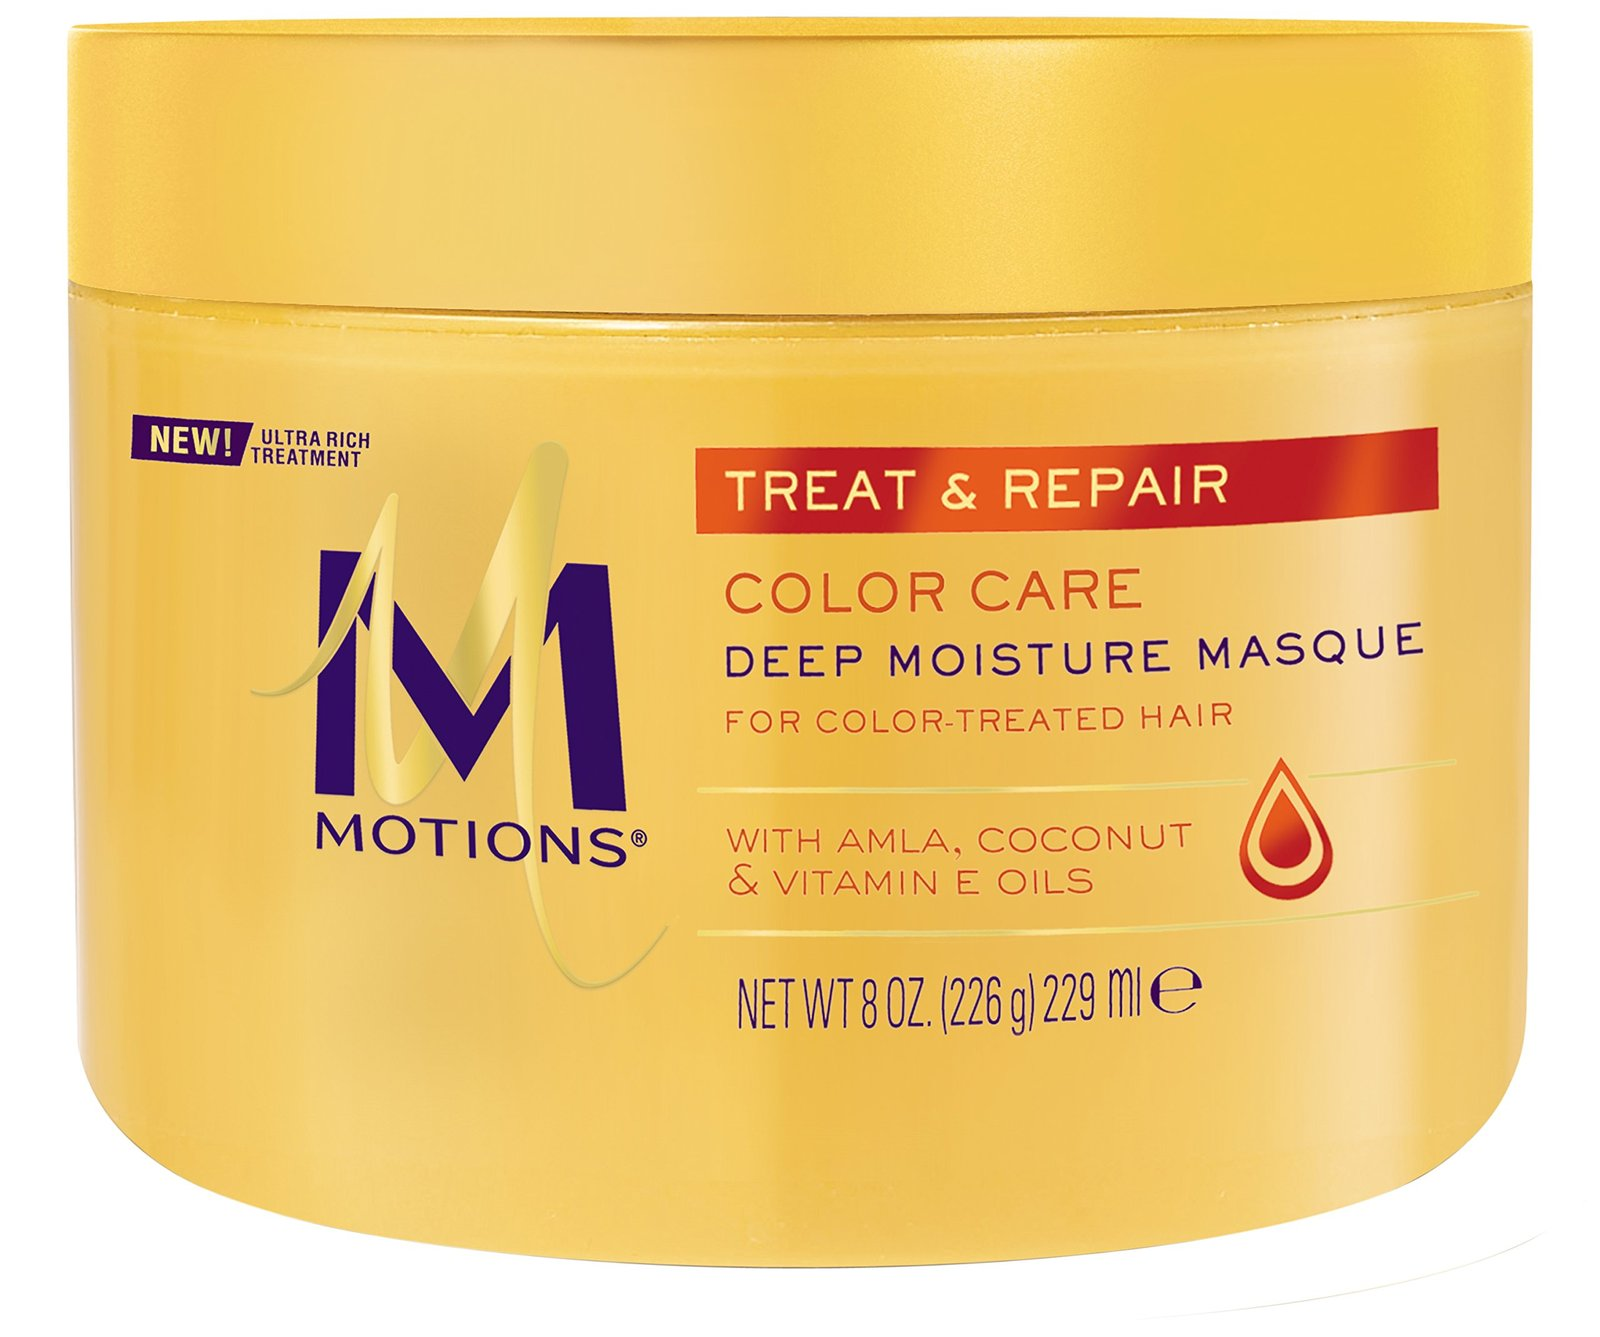 Motions Treat and Repair Deep Moisture Masque, Color Care 8 oz